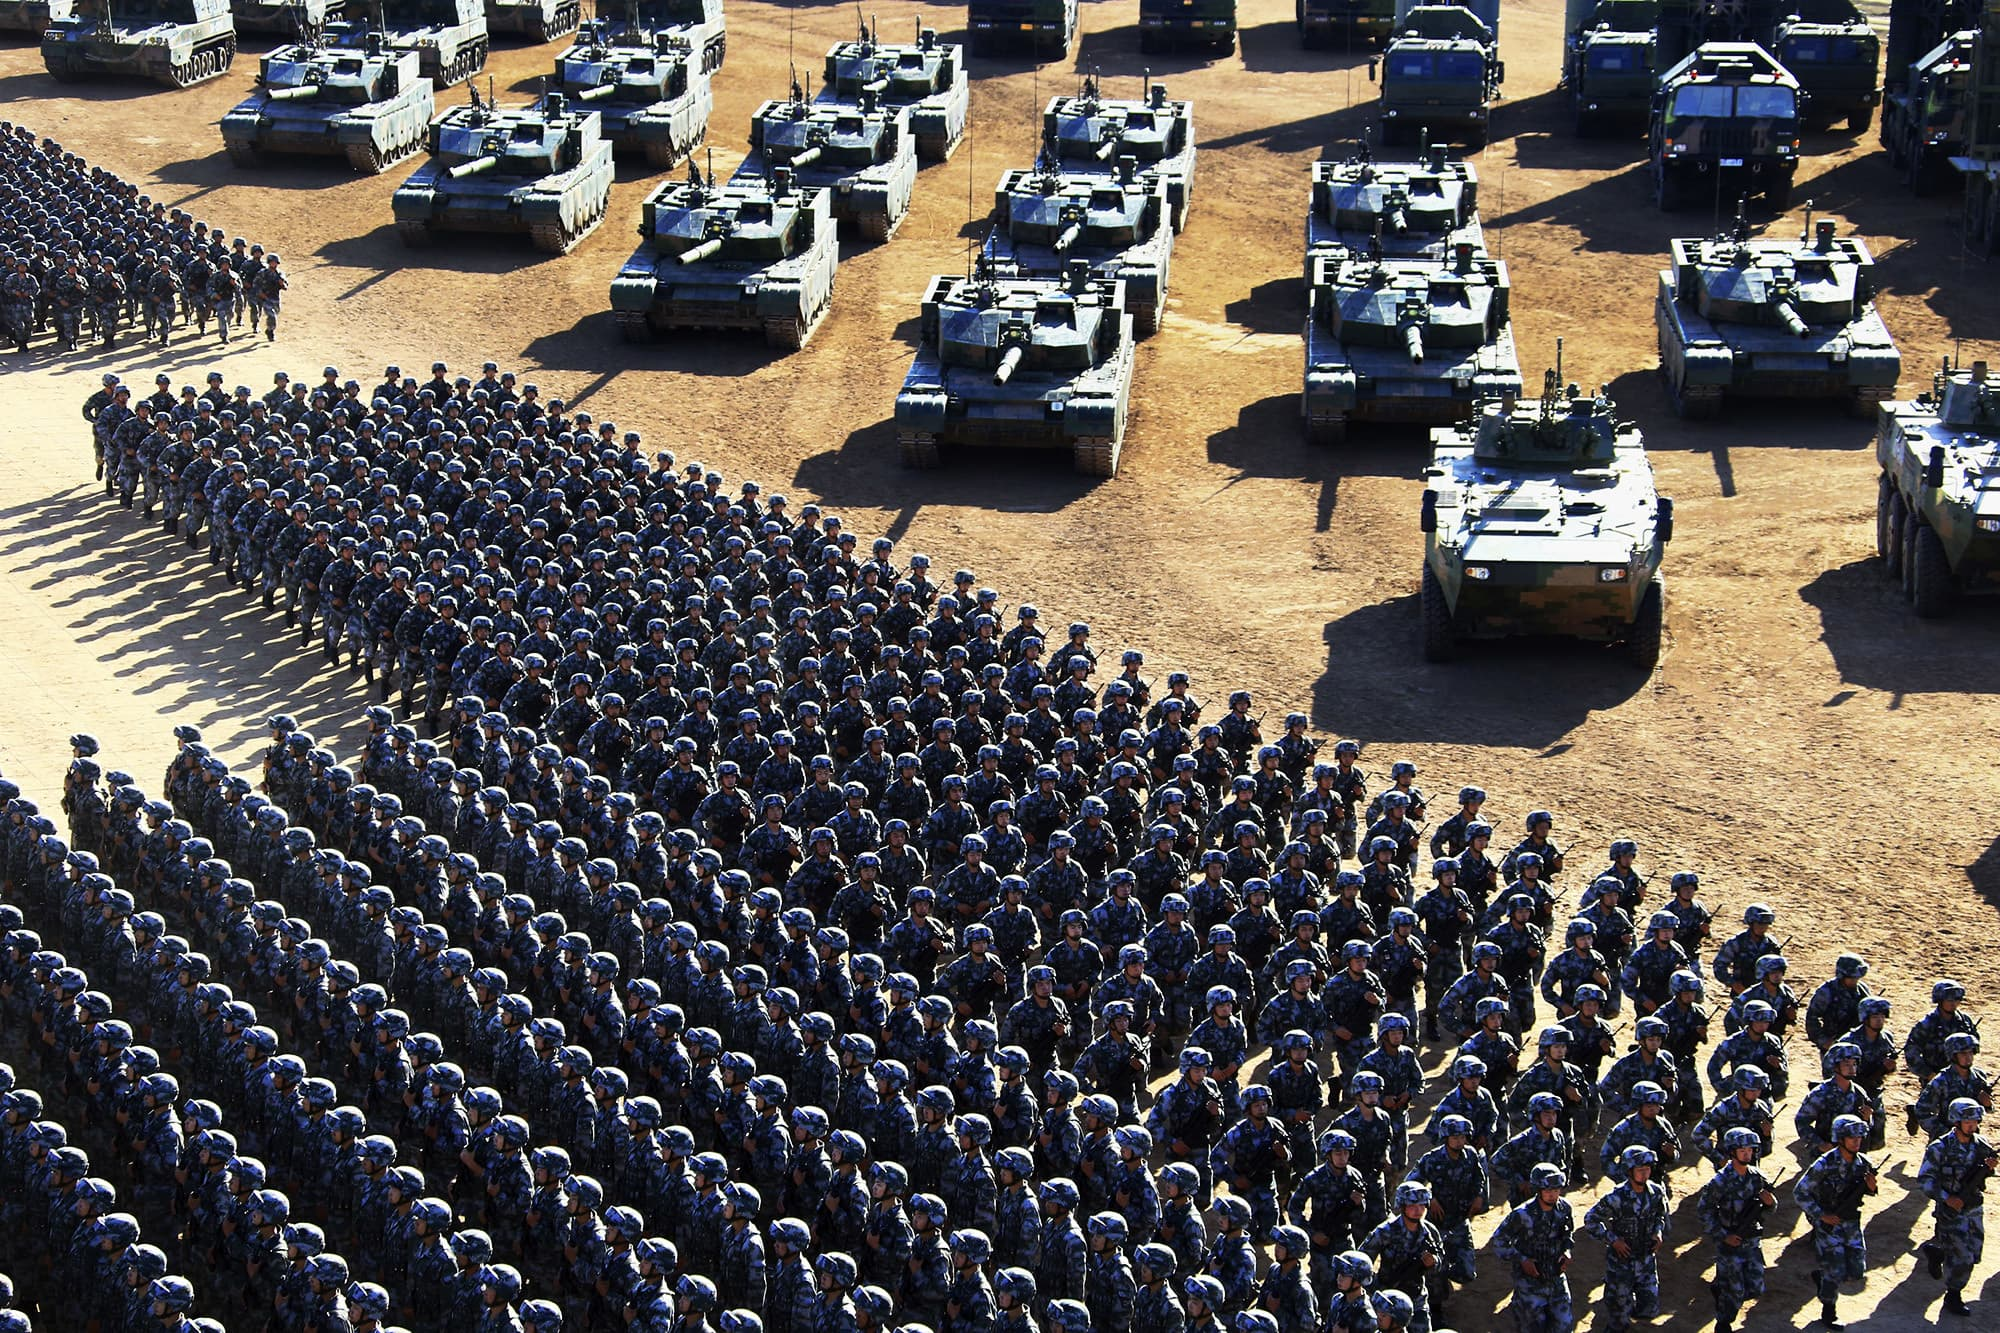 In this photo released by China's Xinhua News Agency, Chinese People's Liberation Army (PLA)  troops march past military vehicles Sunday, July 31, 2017 as they arrive for a military parade to commemorate the 90th anniversary of the founding of the PLA. ─ AP